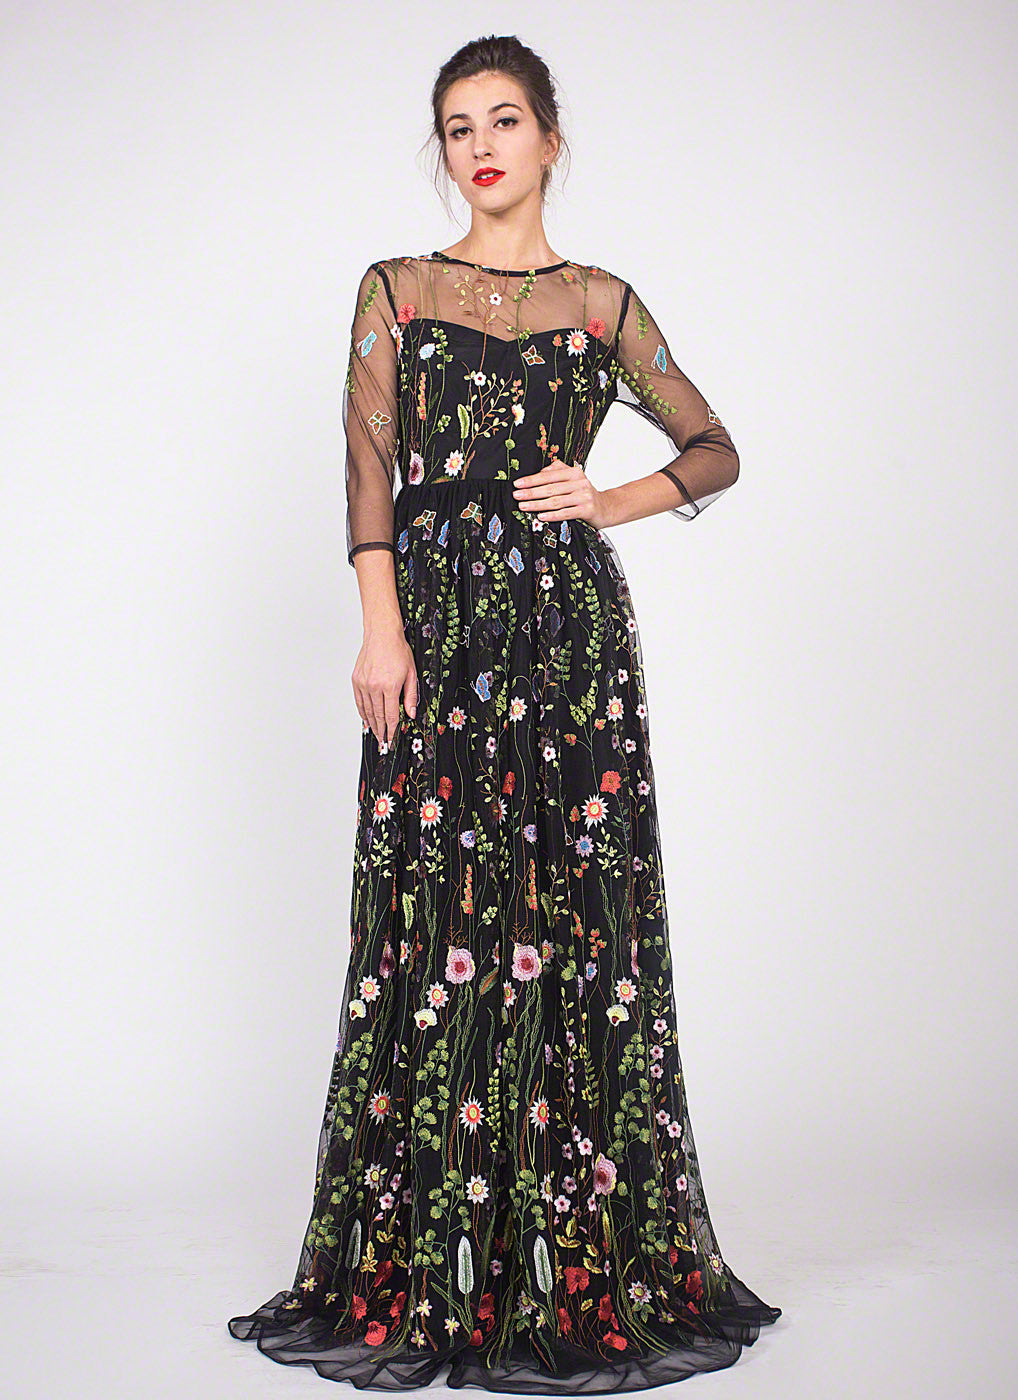 Black Tulle Floor Length Dress With Colorful Floral Embroidery/ Elegant  Black Embroidered Tulle Lace Evening